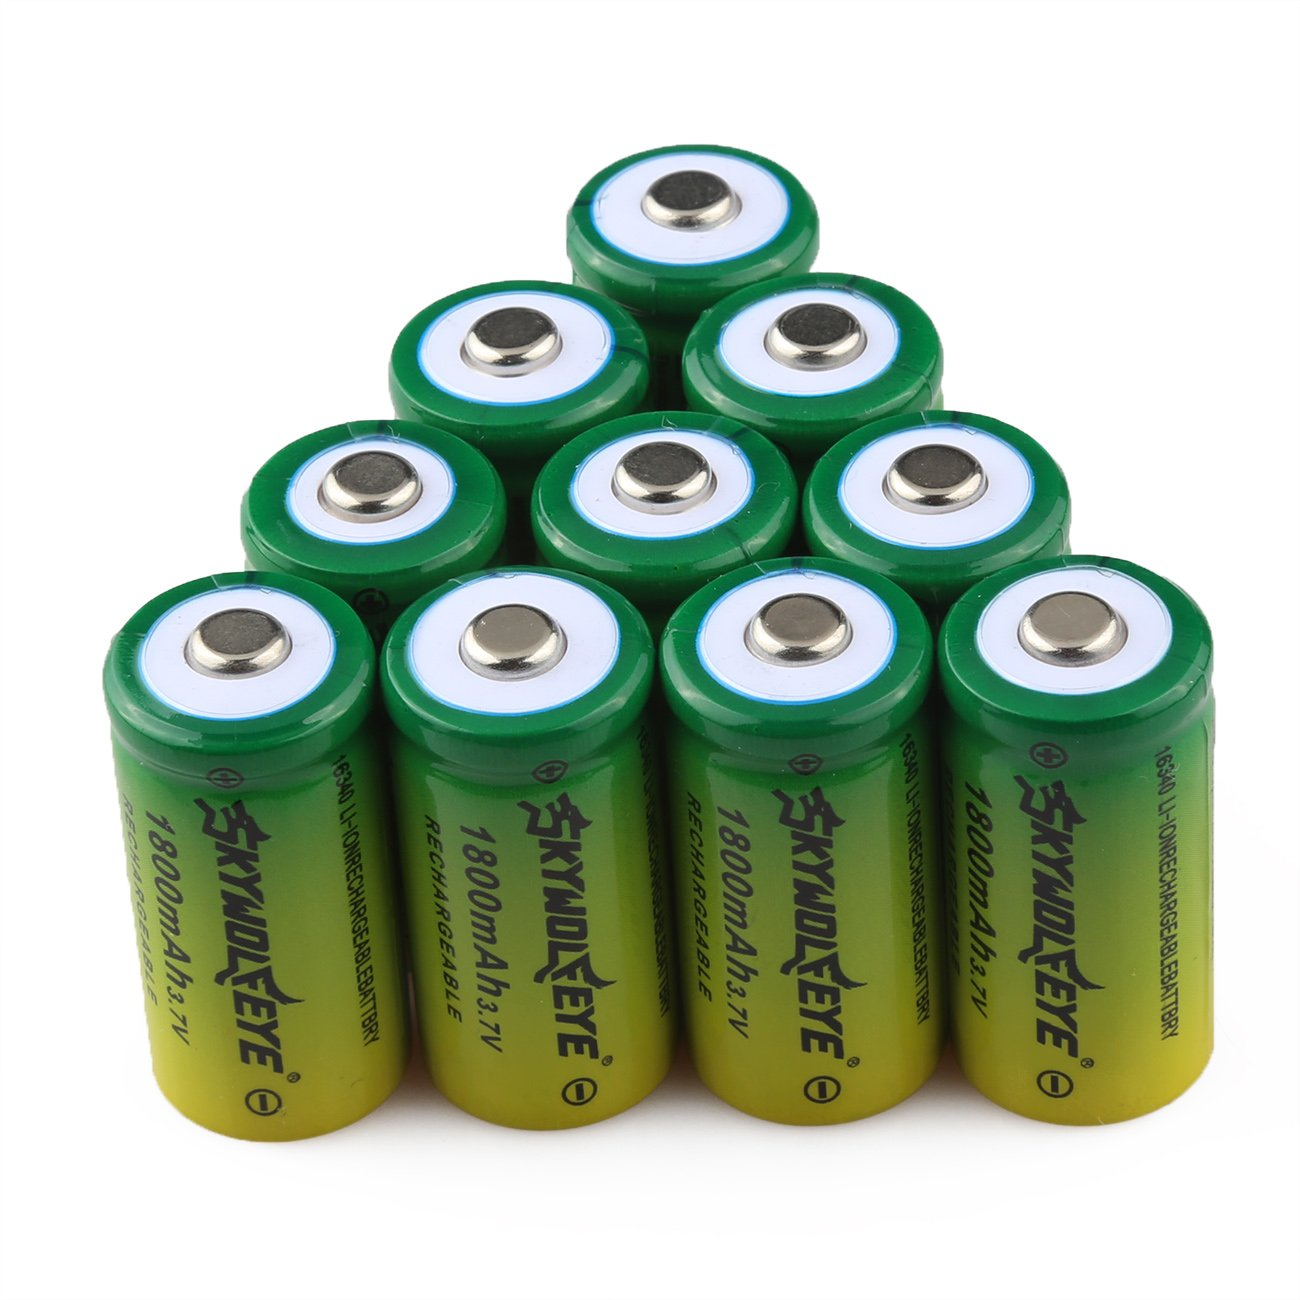 10 Pcs 3.7V 1800mAh 16340 Li-ion Battery CR123A Rechargeable Batteries for Alro Flashlight Torch Headlamp